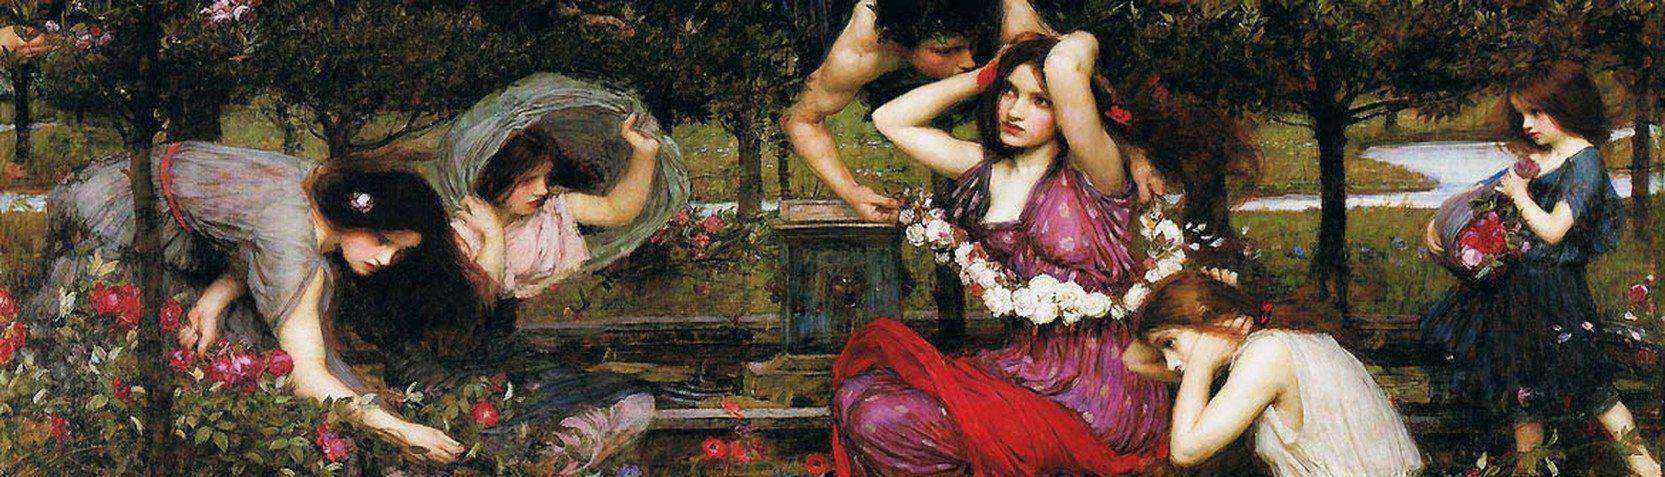 Artistes - John William Waterhouse